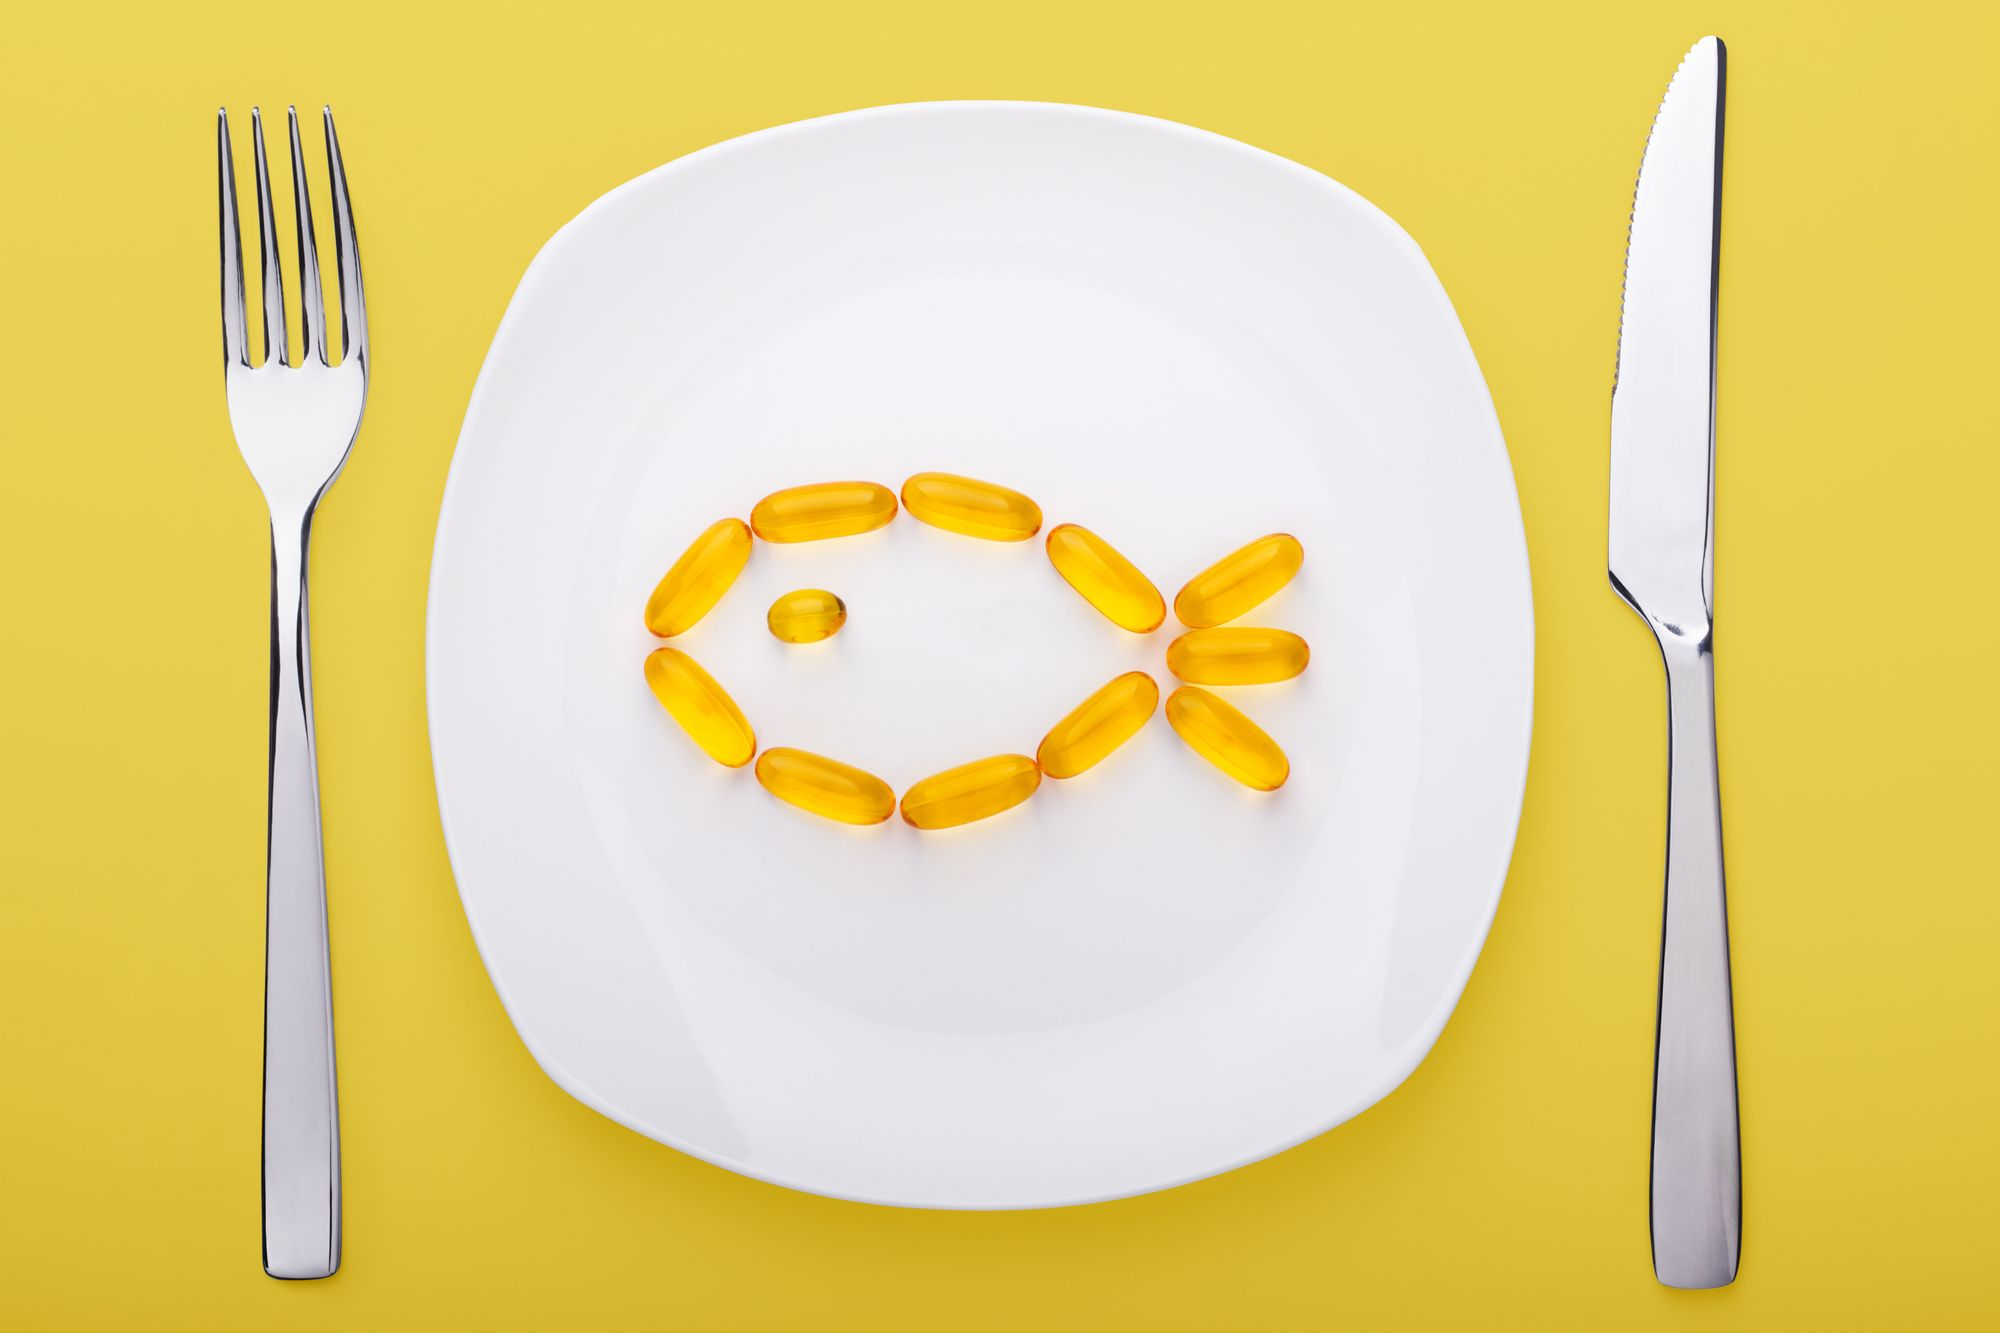 fish-on-plate